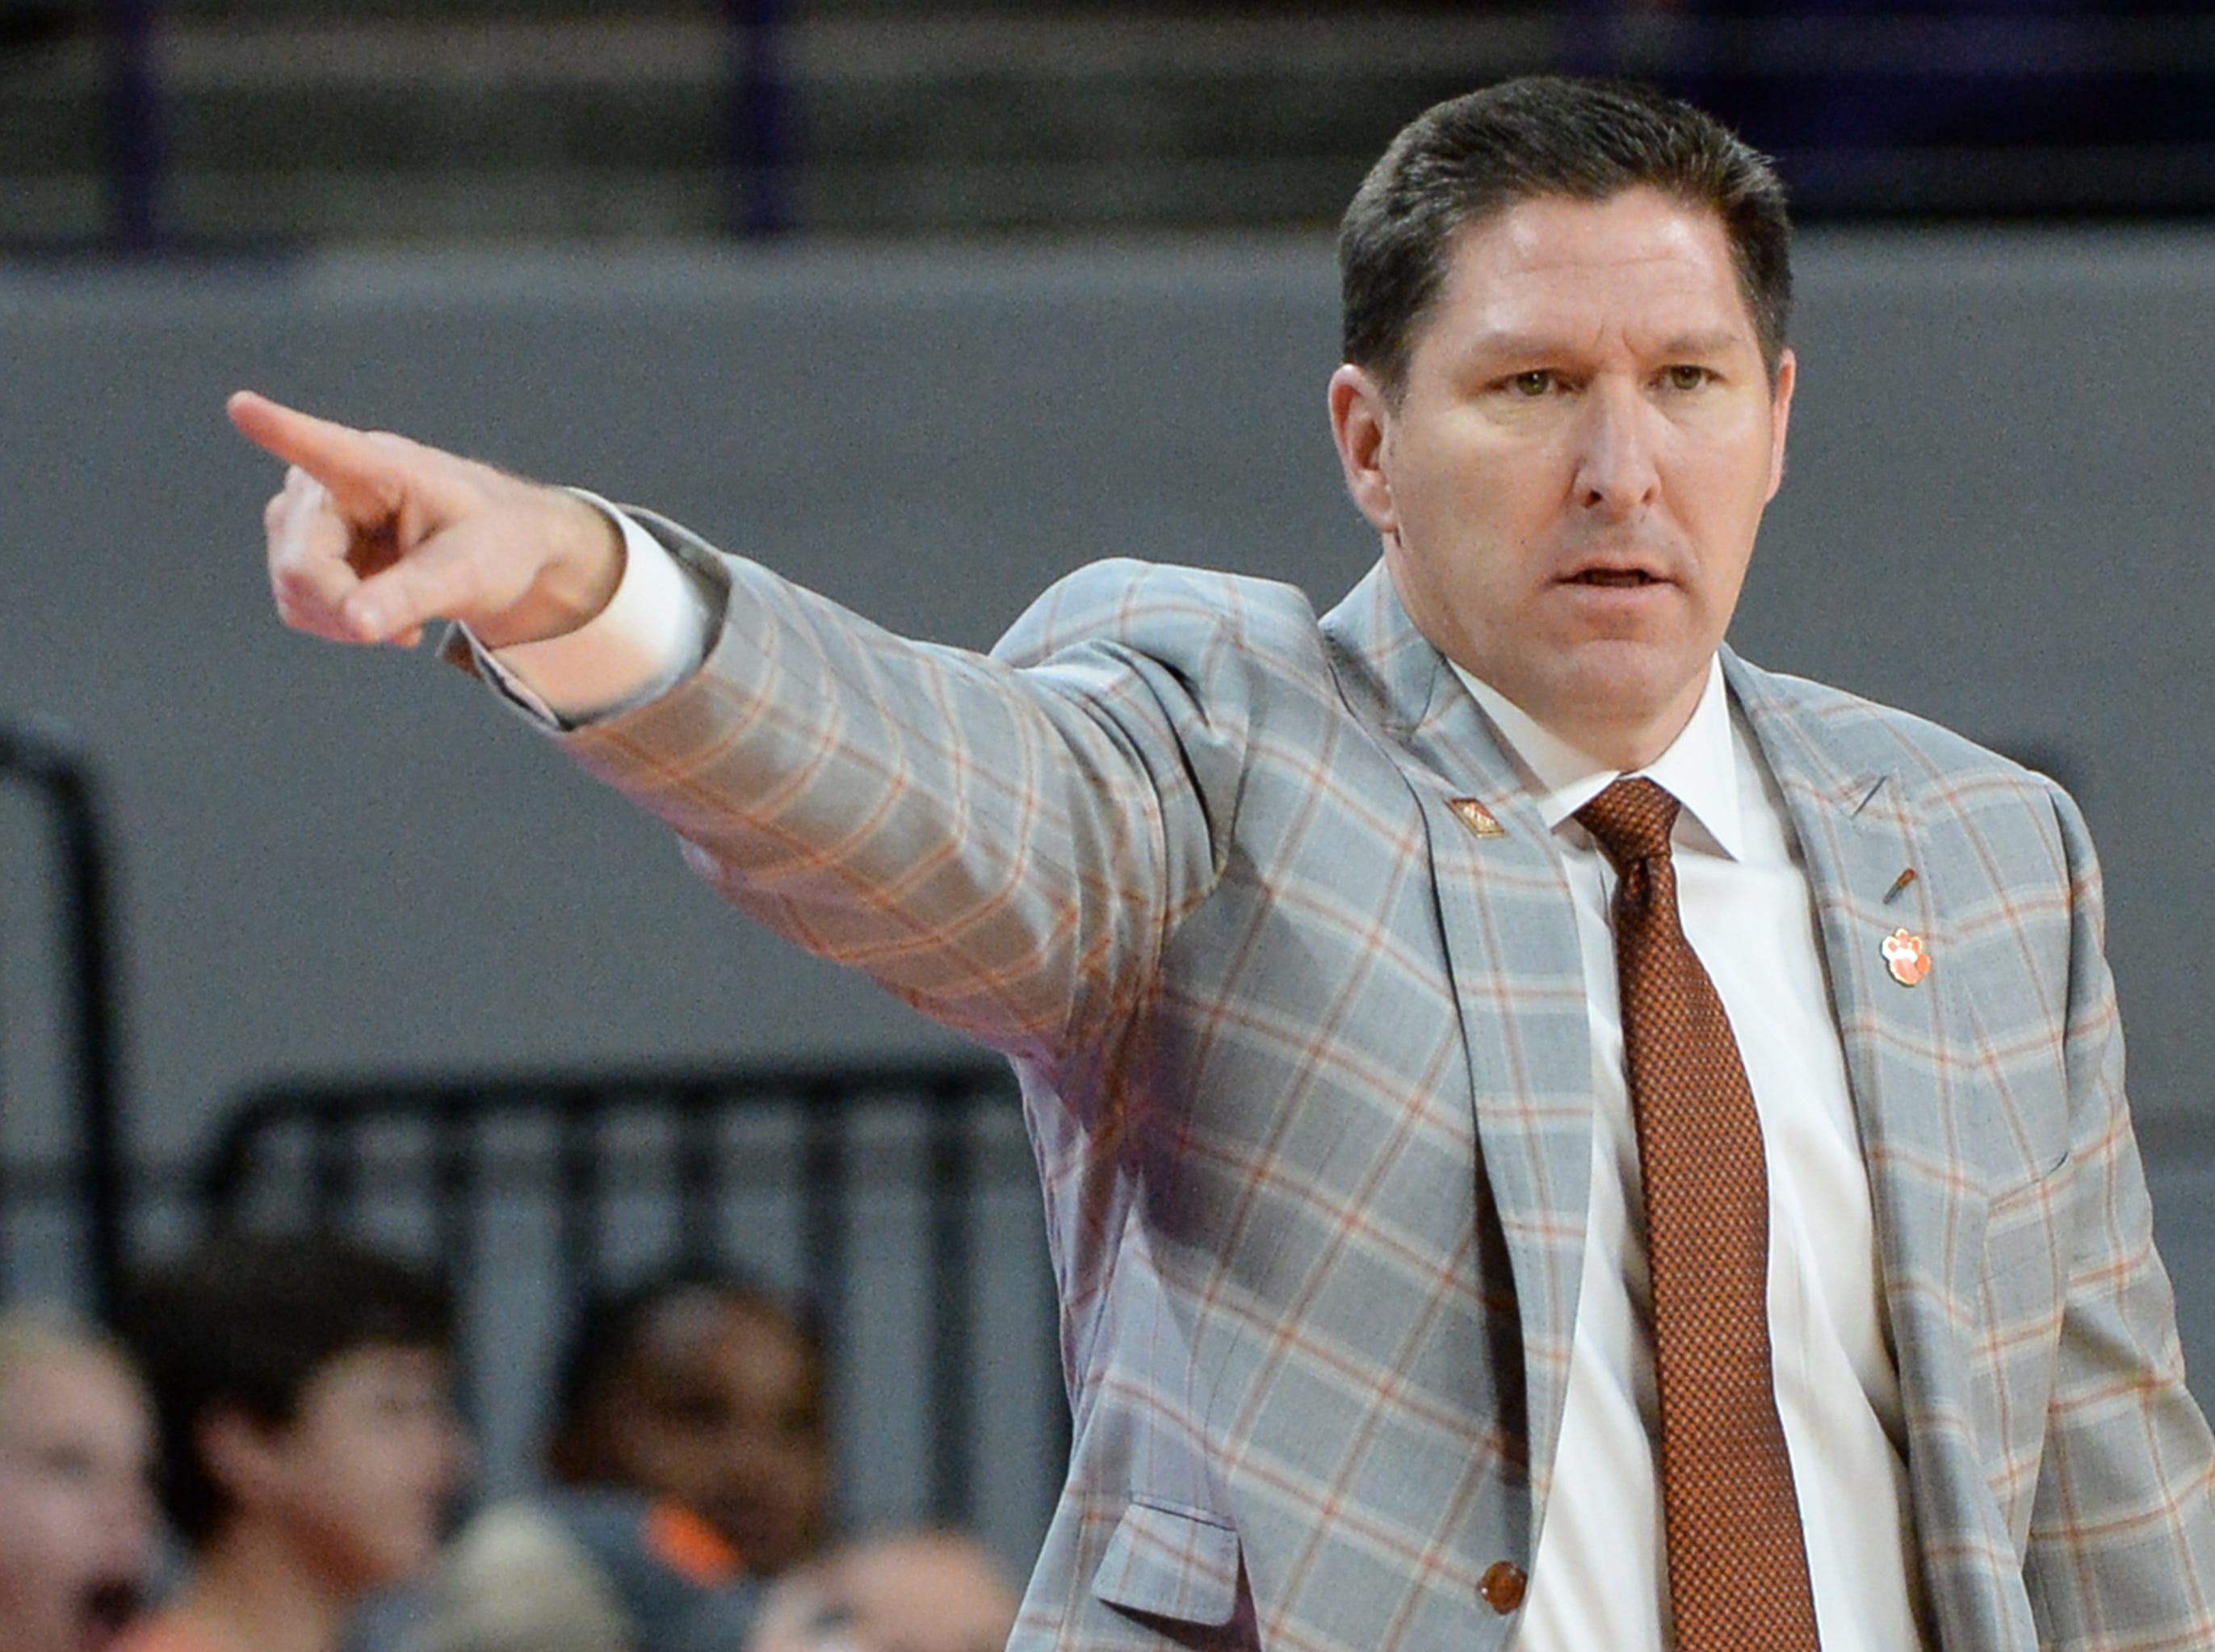 Clemson head coach Brad Brownell communicates with players at the game with Wright State during the first half of the NIT at Littlejohn Coliseum in Clemson Tuesday, March 19, 2019.